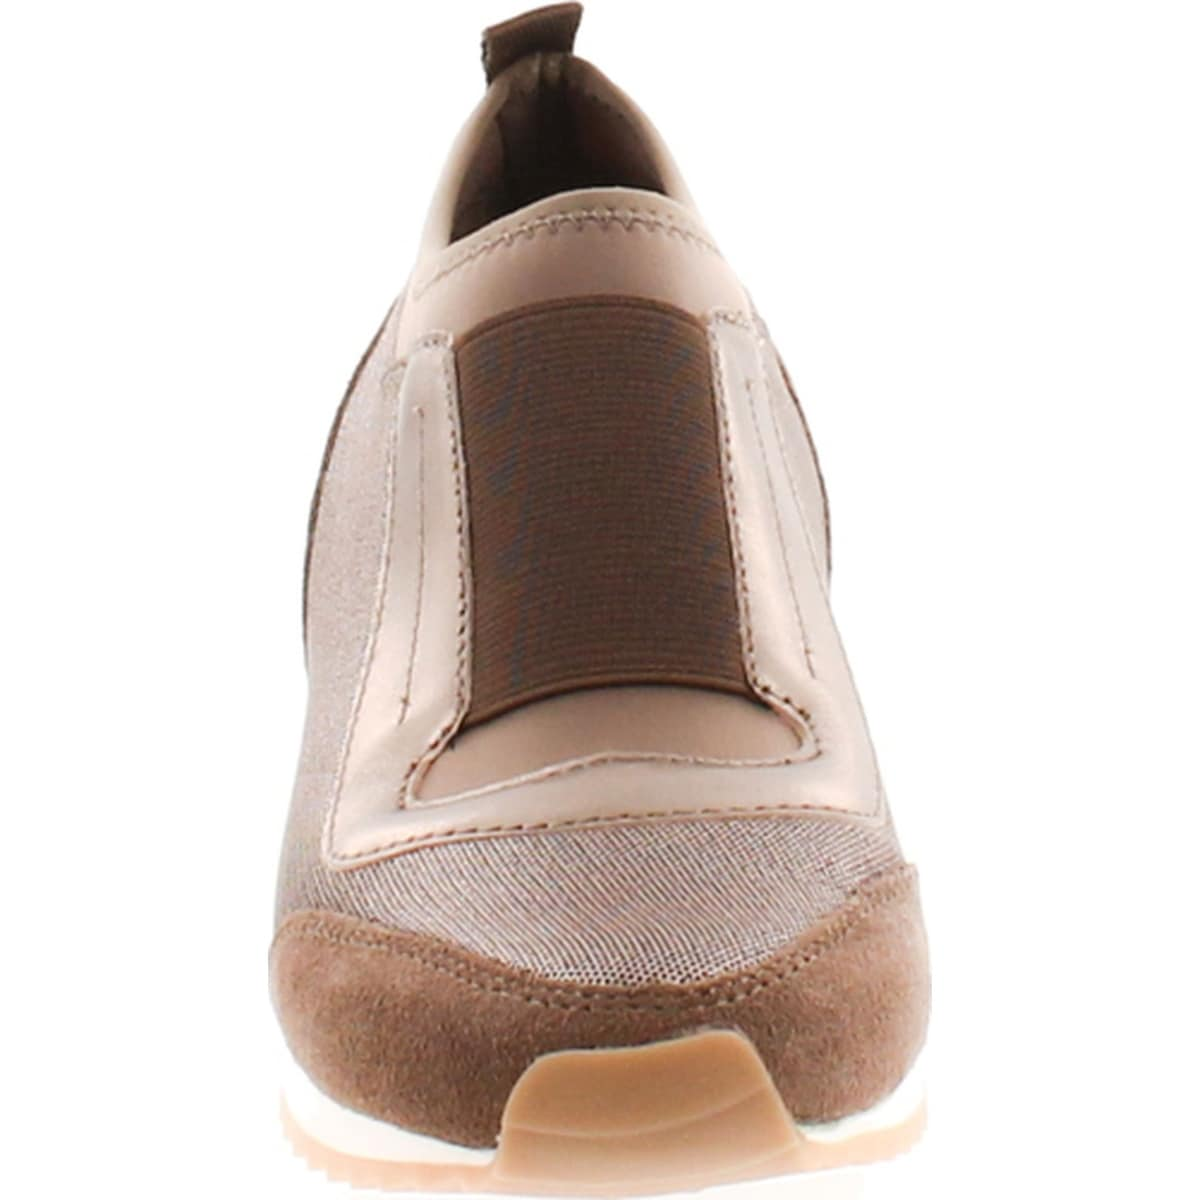 fee3b1aa8d270 Aerosoles Women's Pantheon Fashion Sneaker